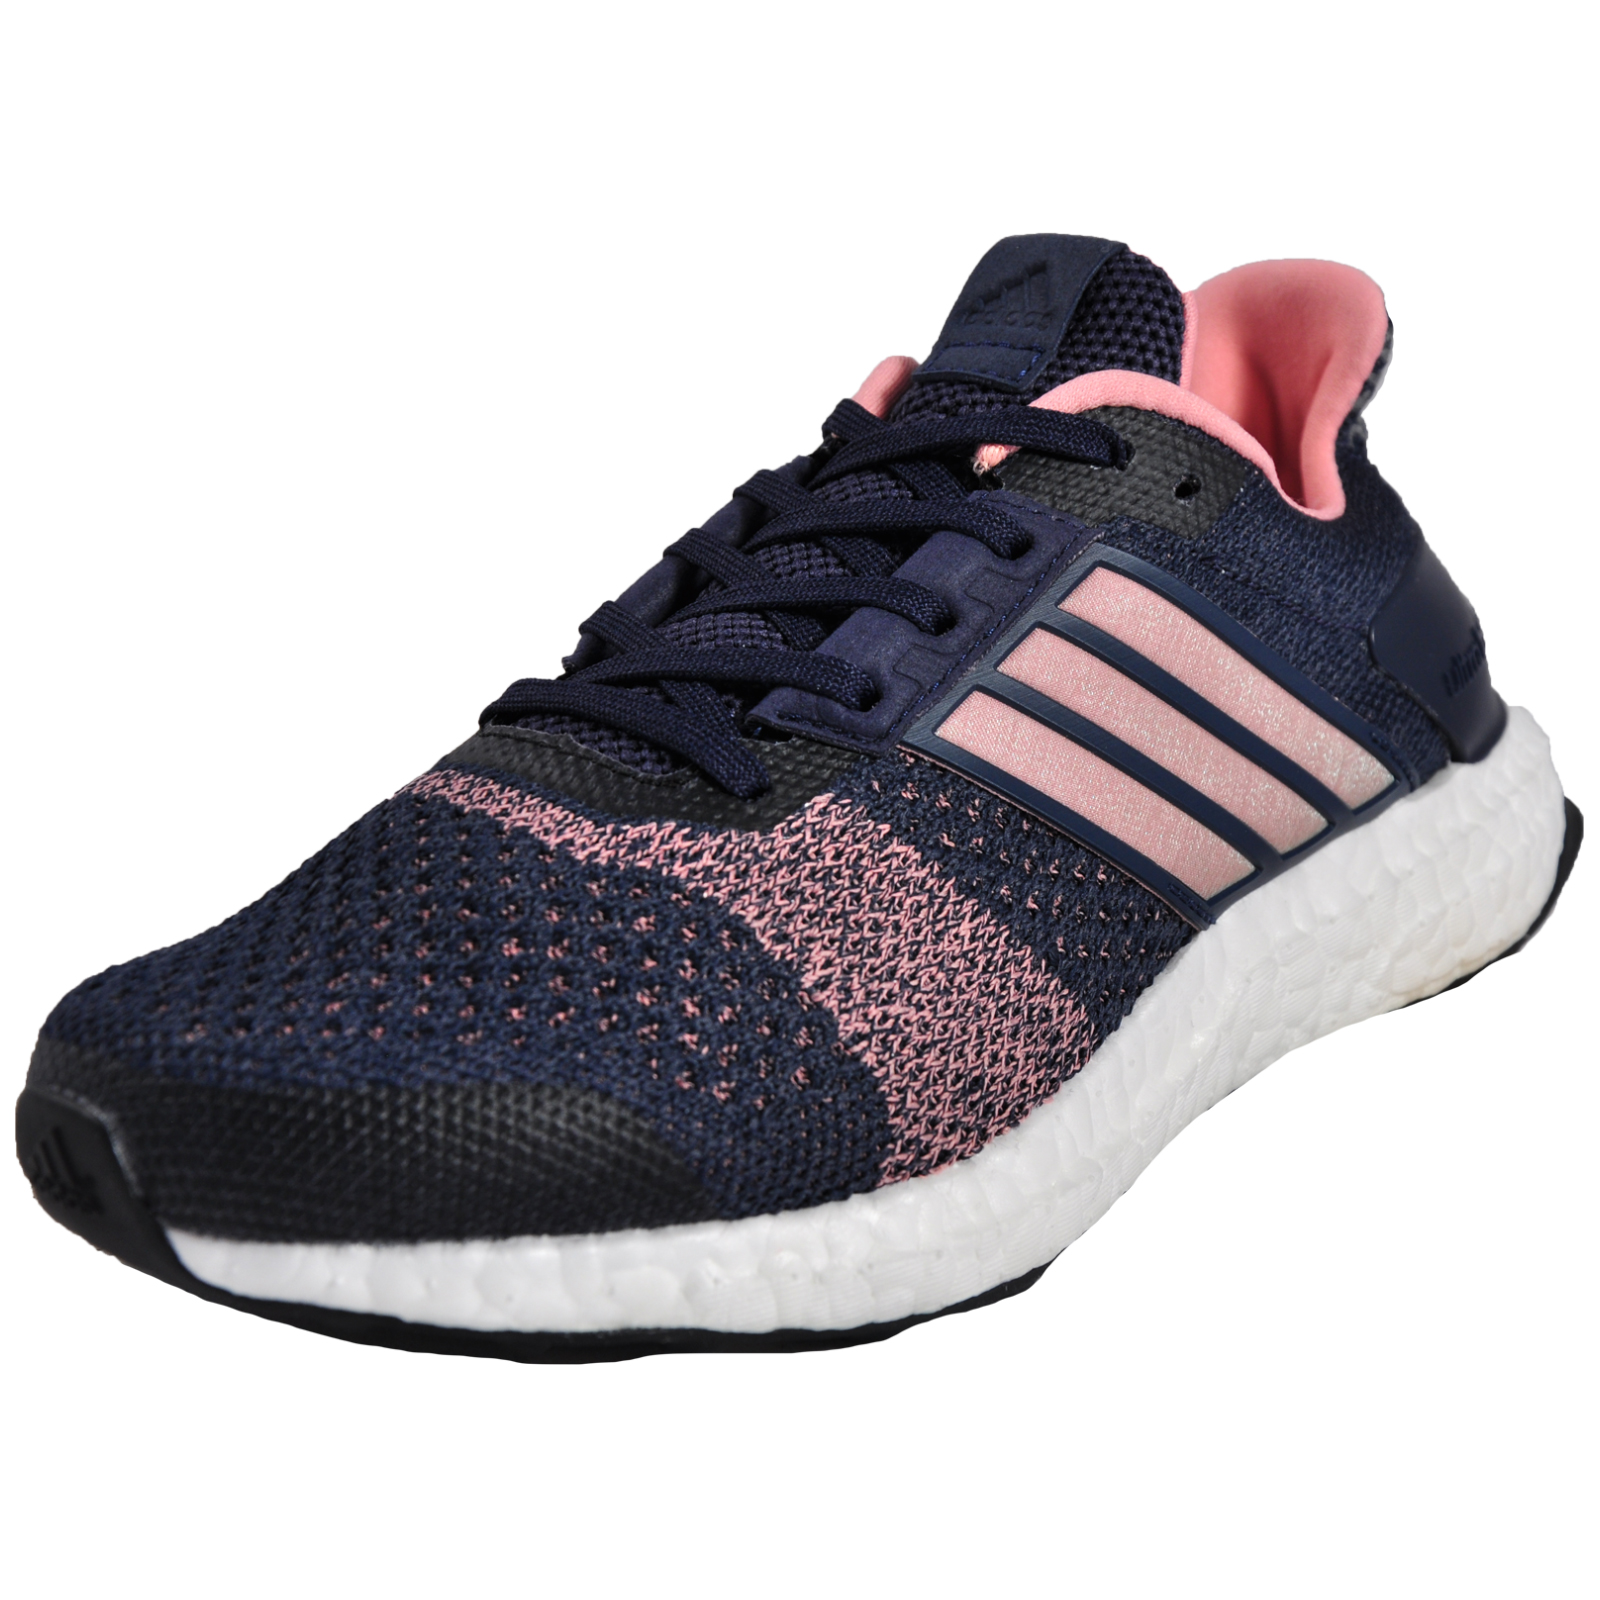 half off 1ff50 f3b2c Details about Adidas Ultra Boost ST Women's Premium Running Shoes Fitness  Gym Trainers UK 4